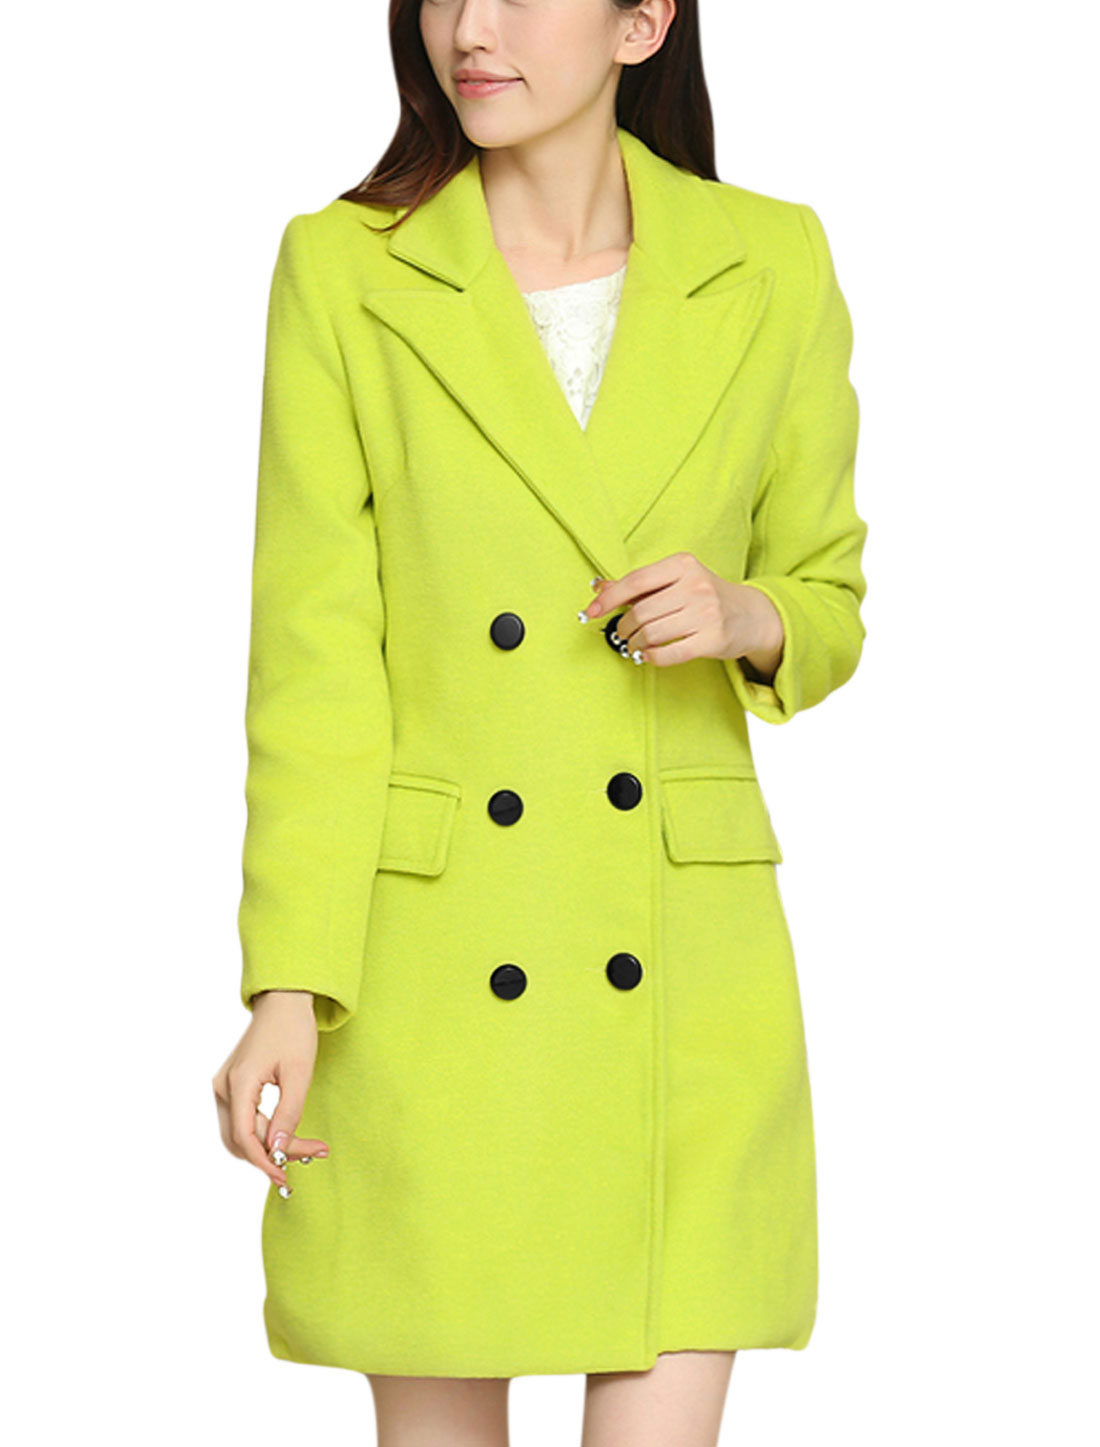 Women Button Closure Peaked Lapel Long Sleeve Worsted Coat Green Yellow M